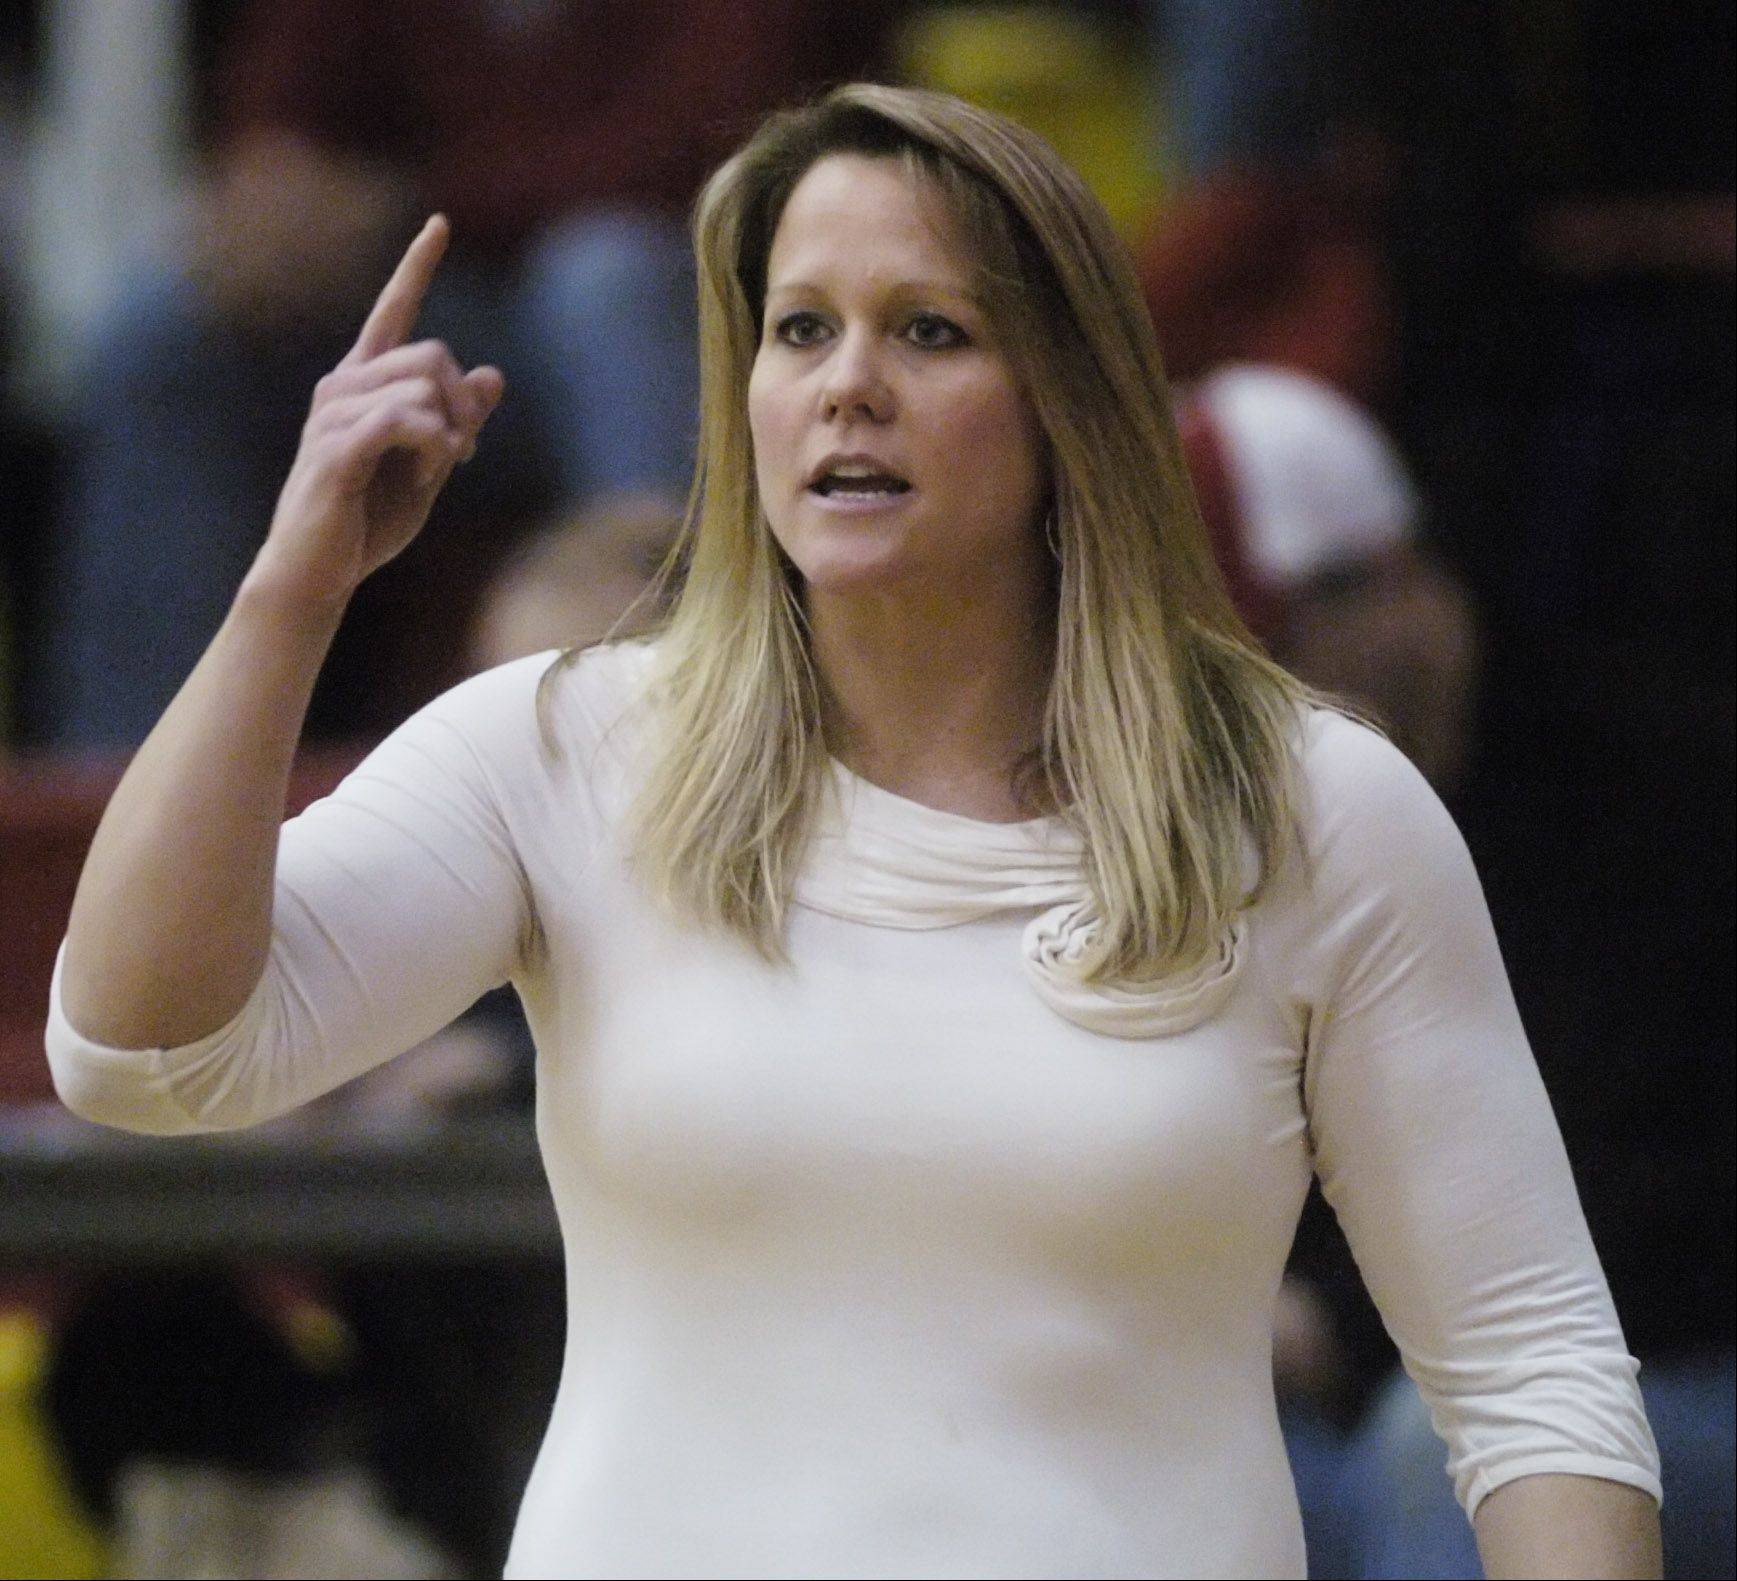 Ashley Berggren's run as Schaumburg girls basketball coach is over, but she's looking forward to developing other professional and personal opportunities.